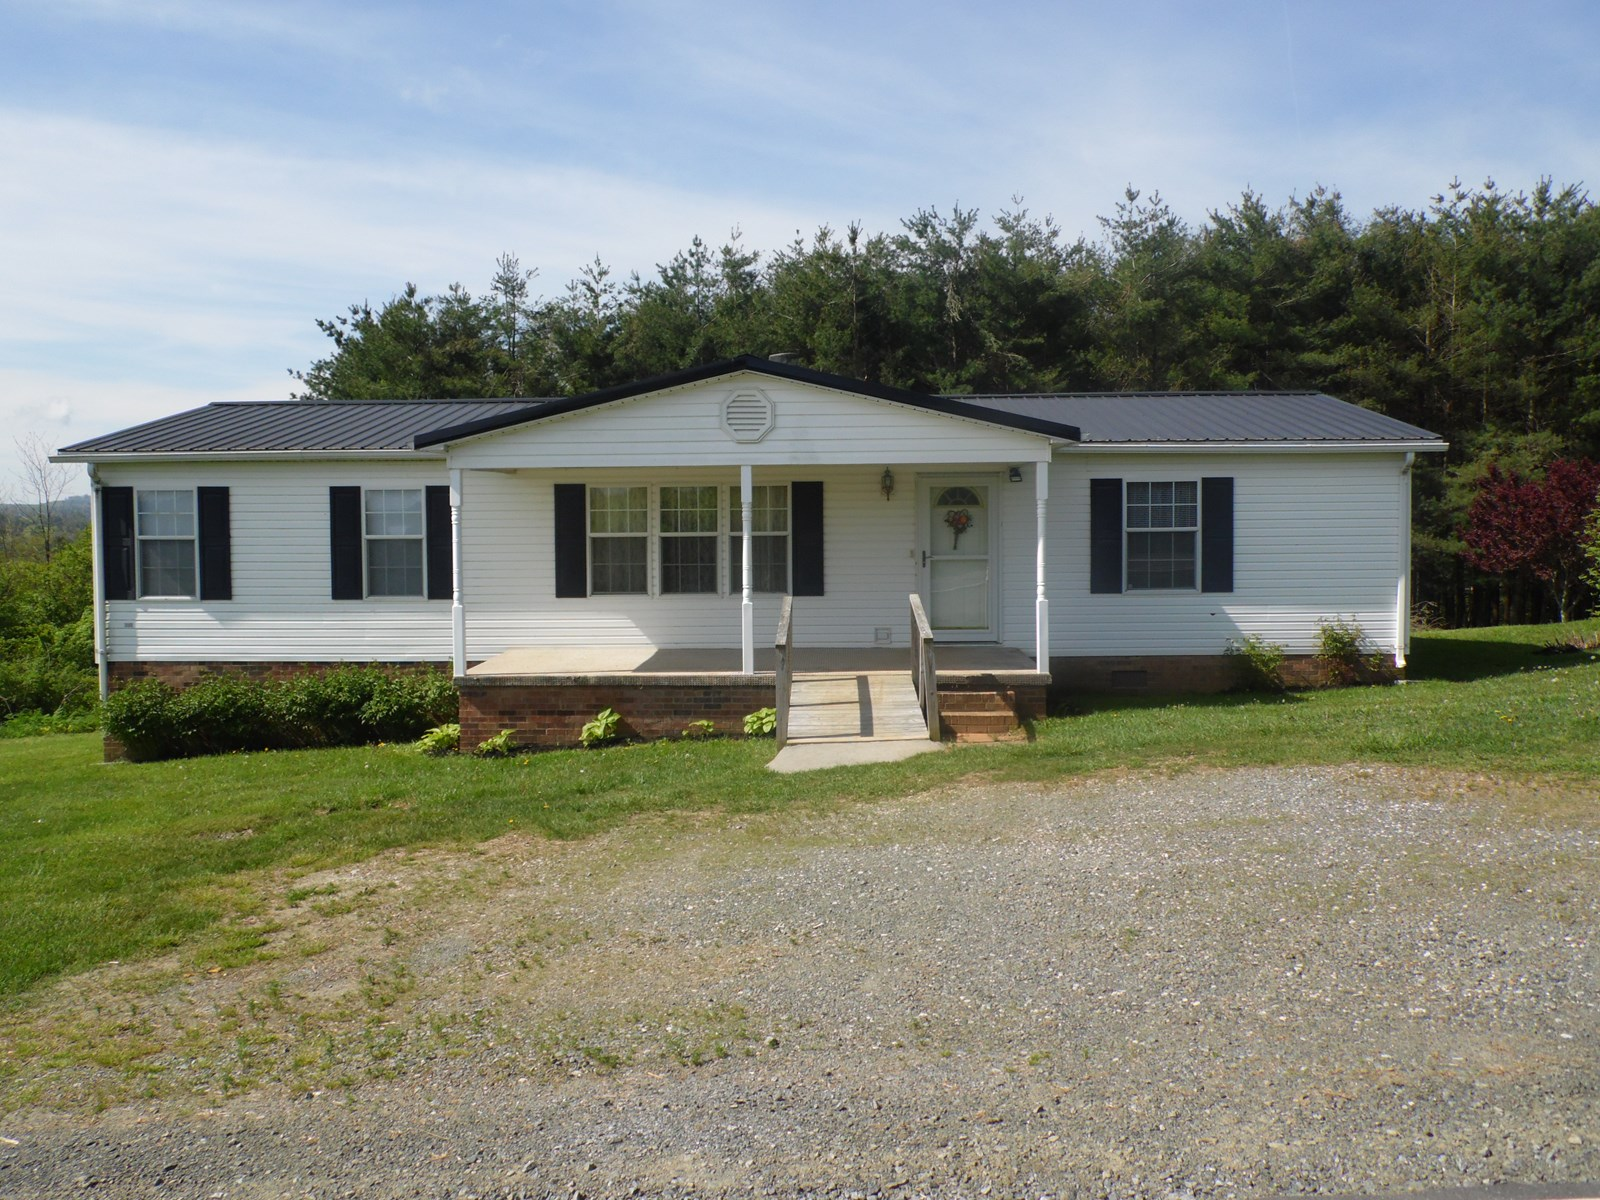 Well-maintained home for sale in Ennice, NC